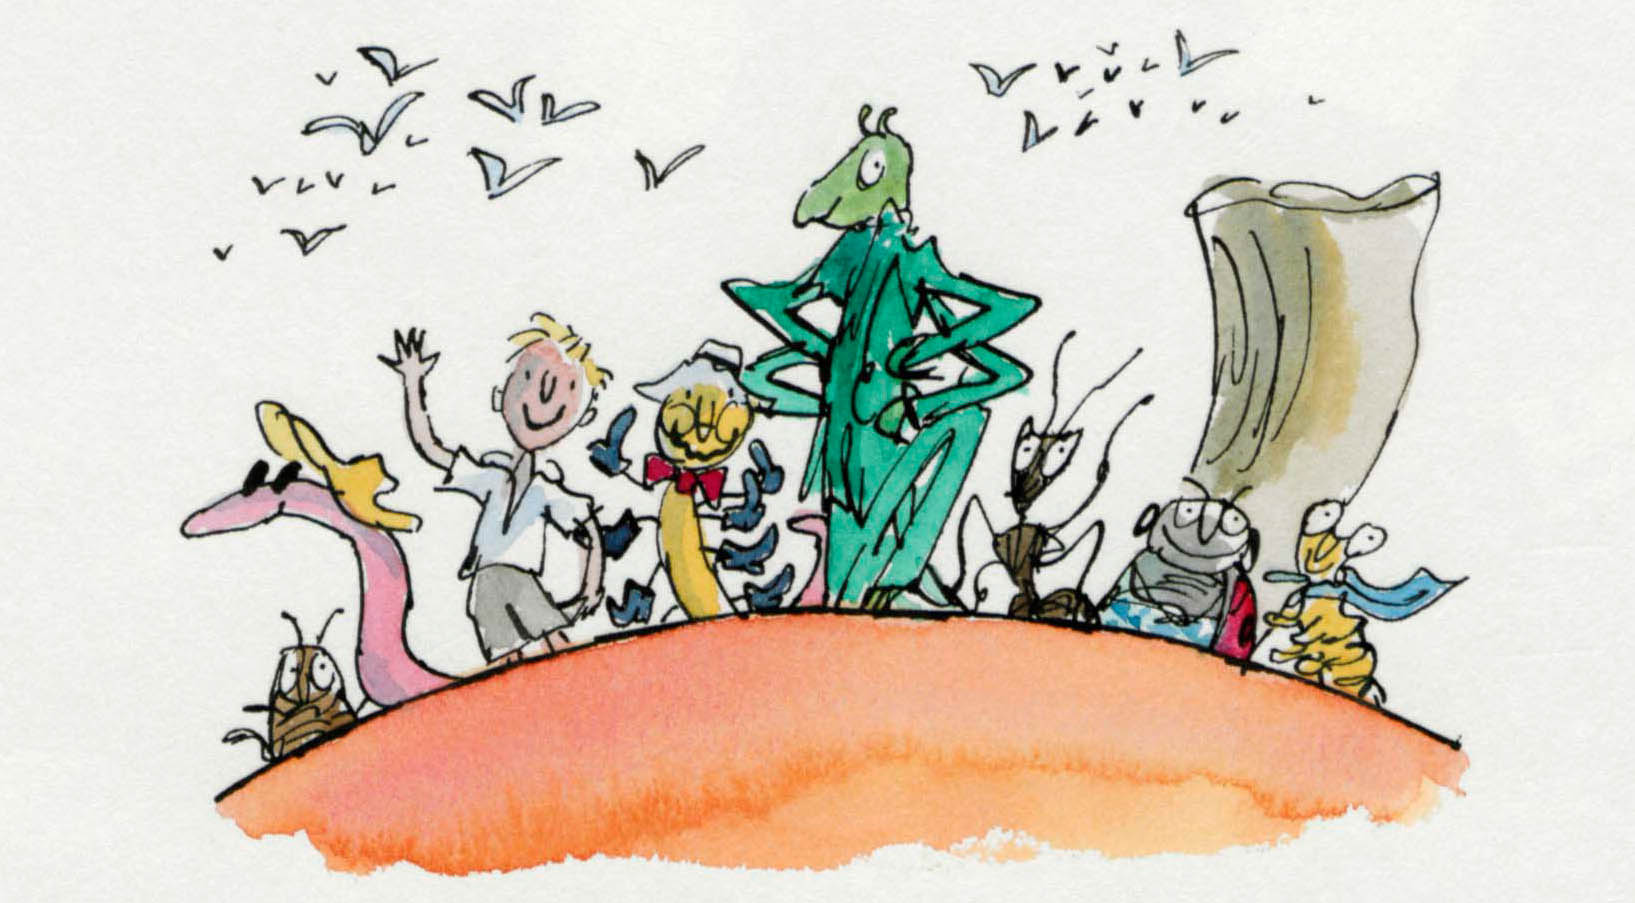 James and the Giant Peach - Quentin Blake